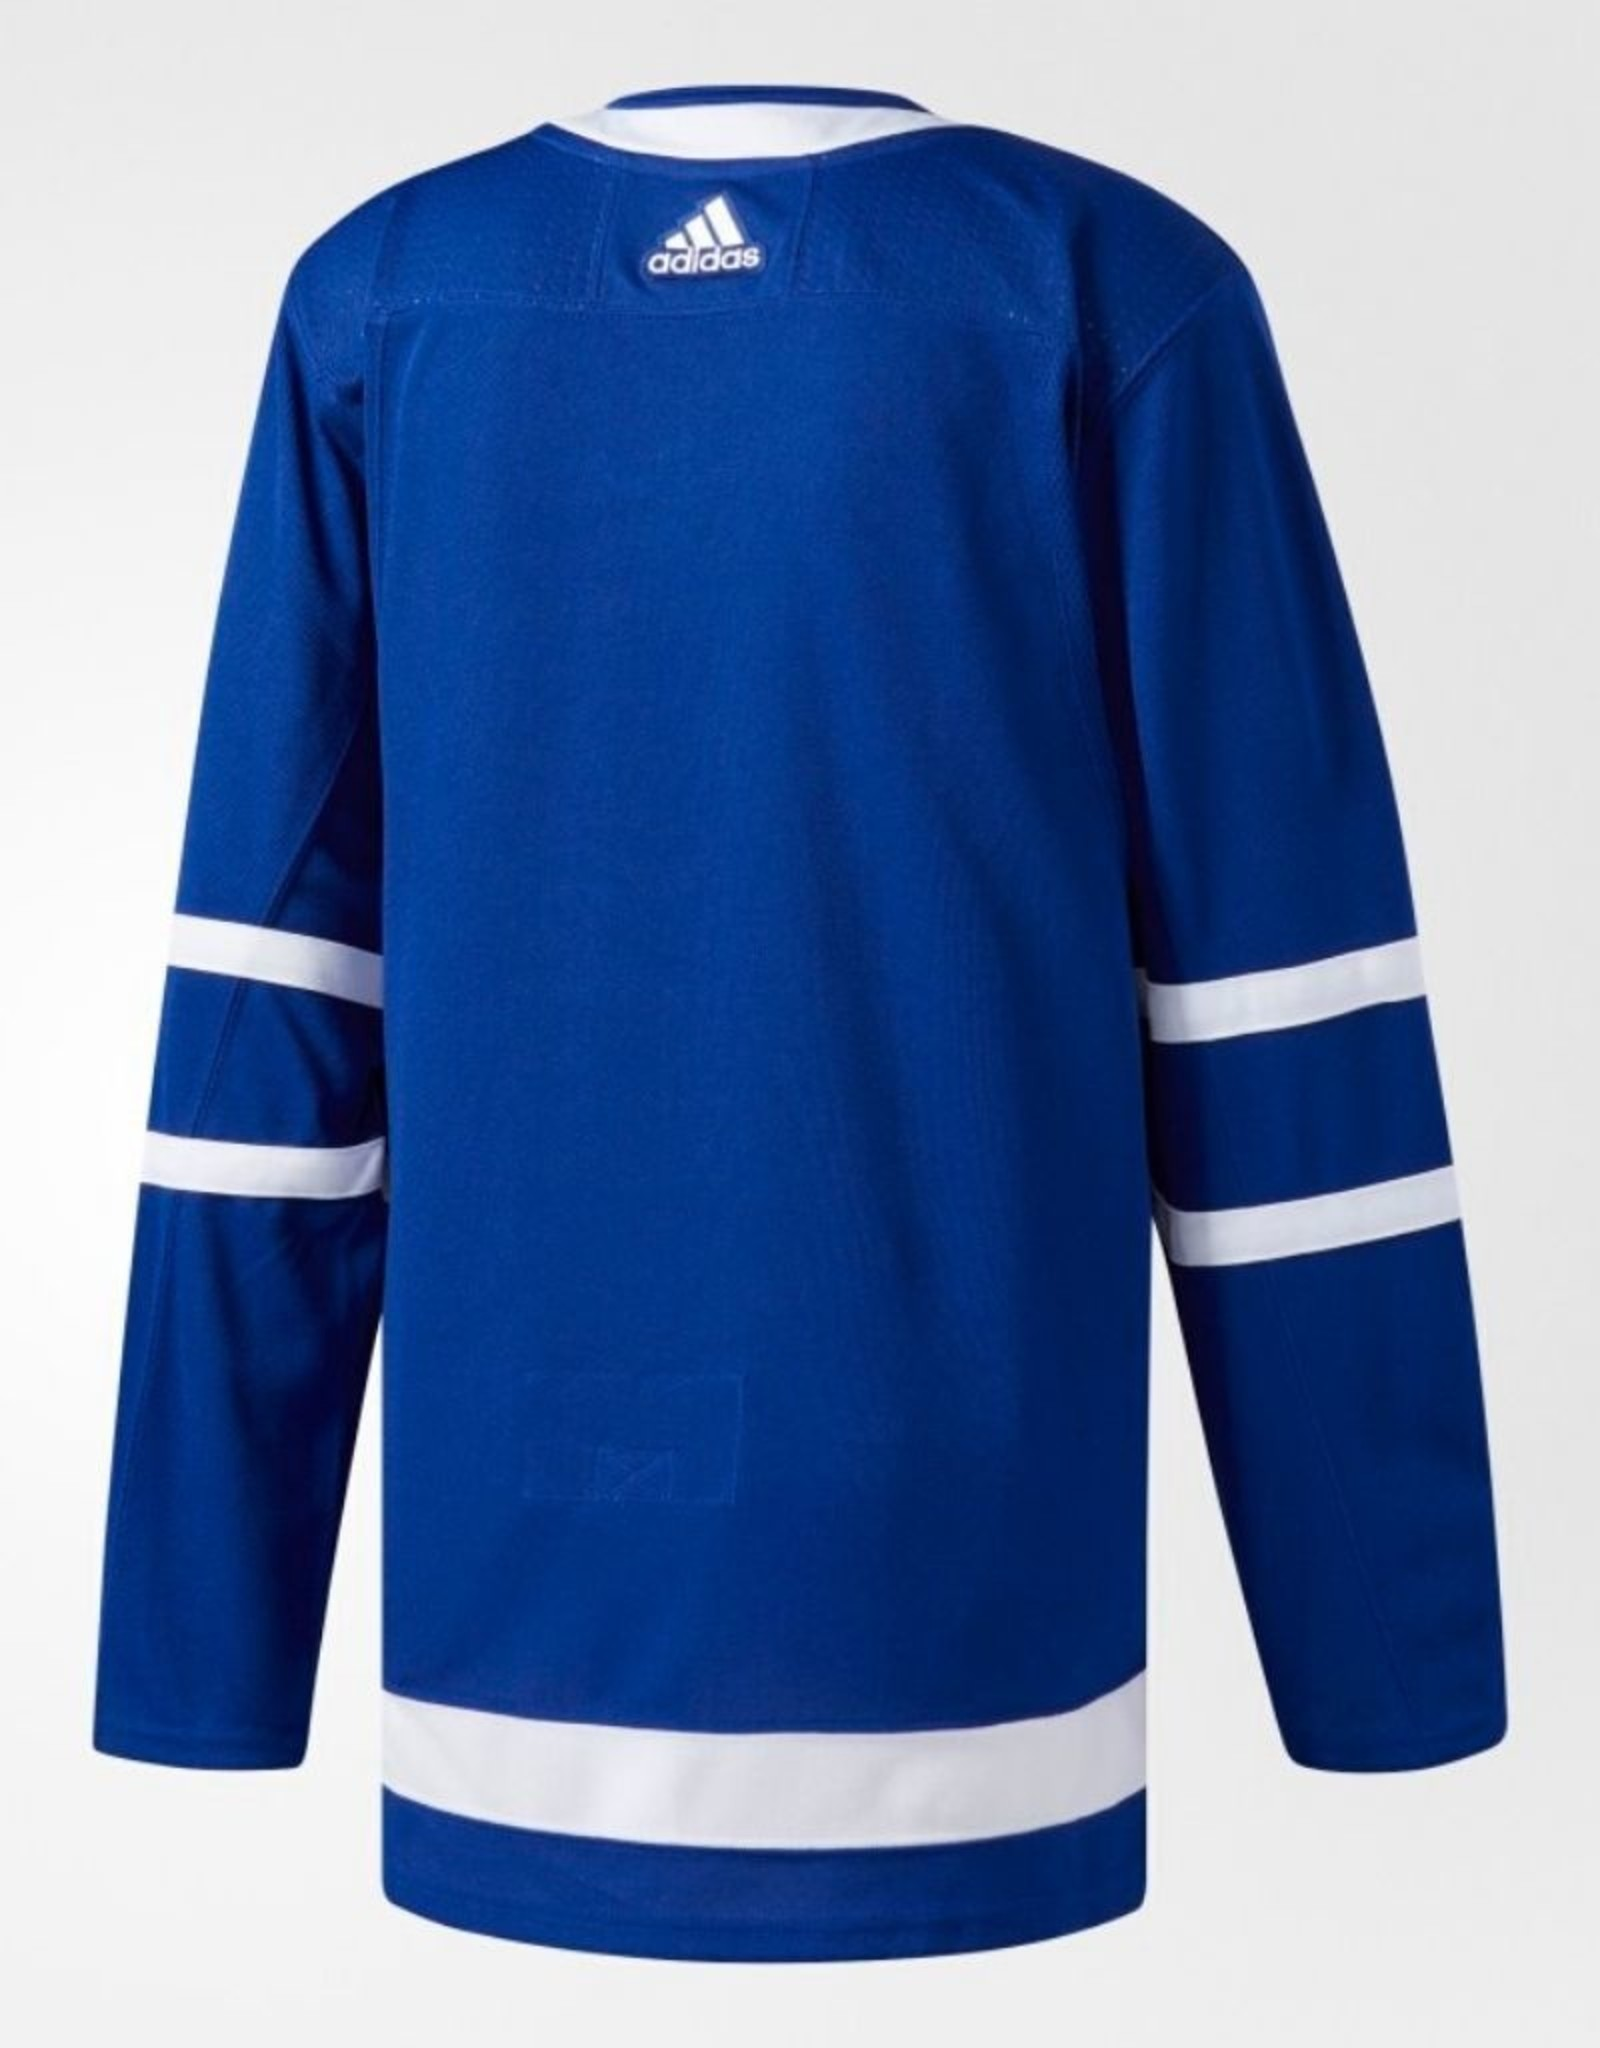 Adidas Adidas Adult Authentic Toronto Maple Leafs Jersey Blue